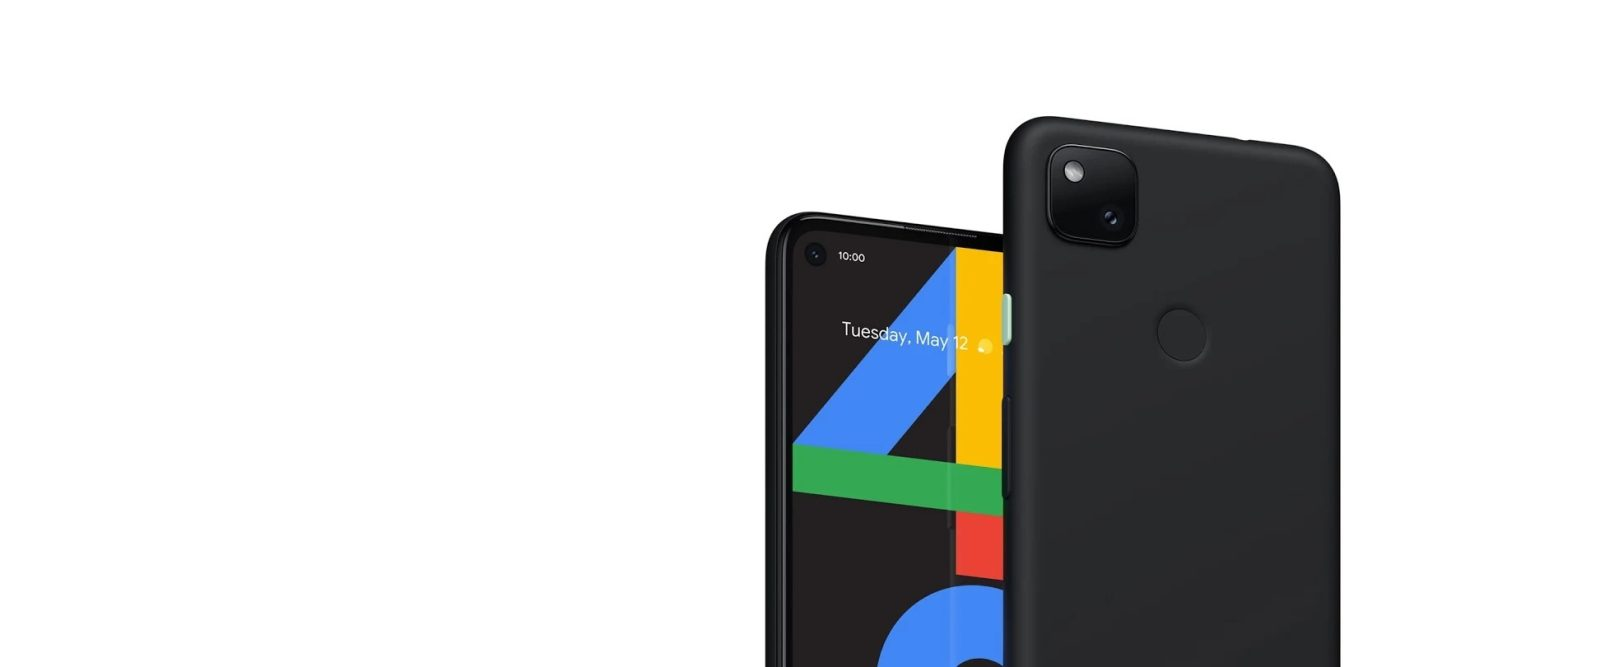 Press image on Google Pixel 4a appears on Google's website